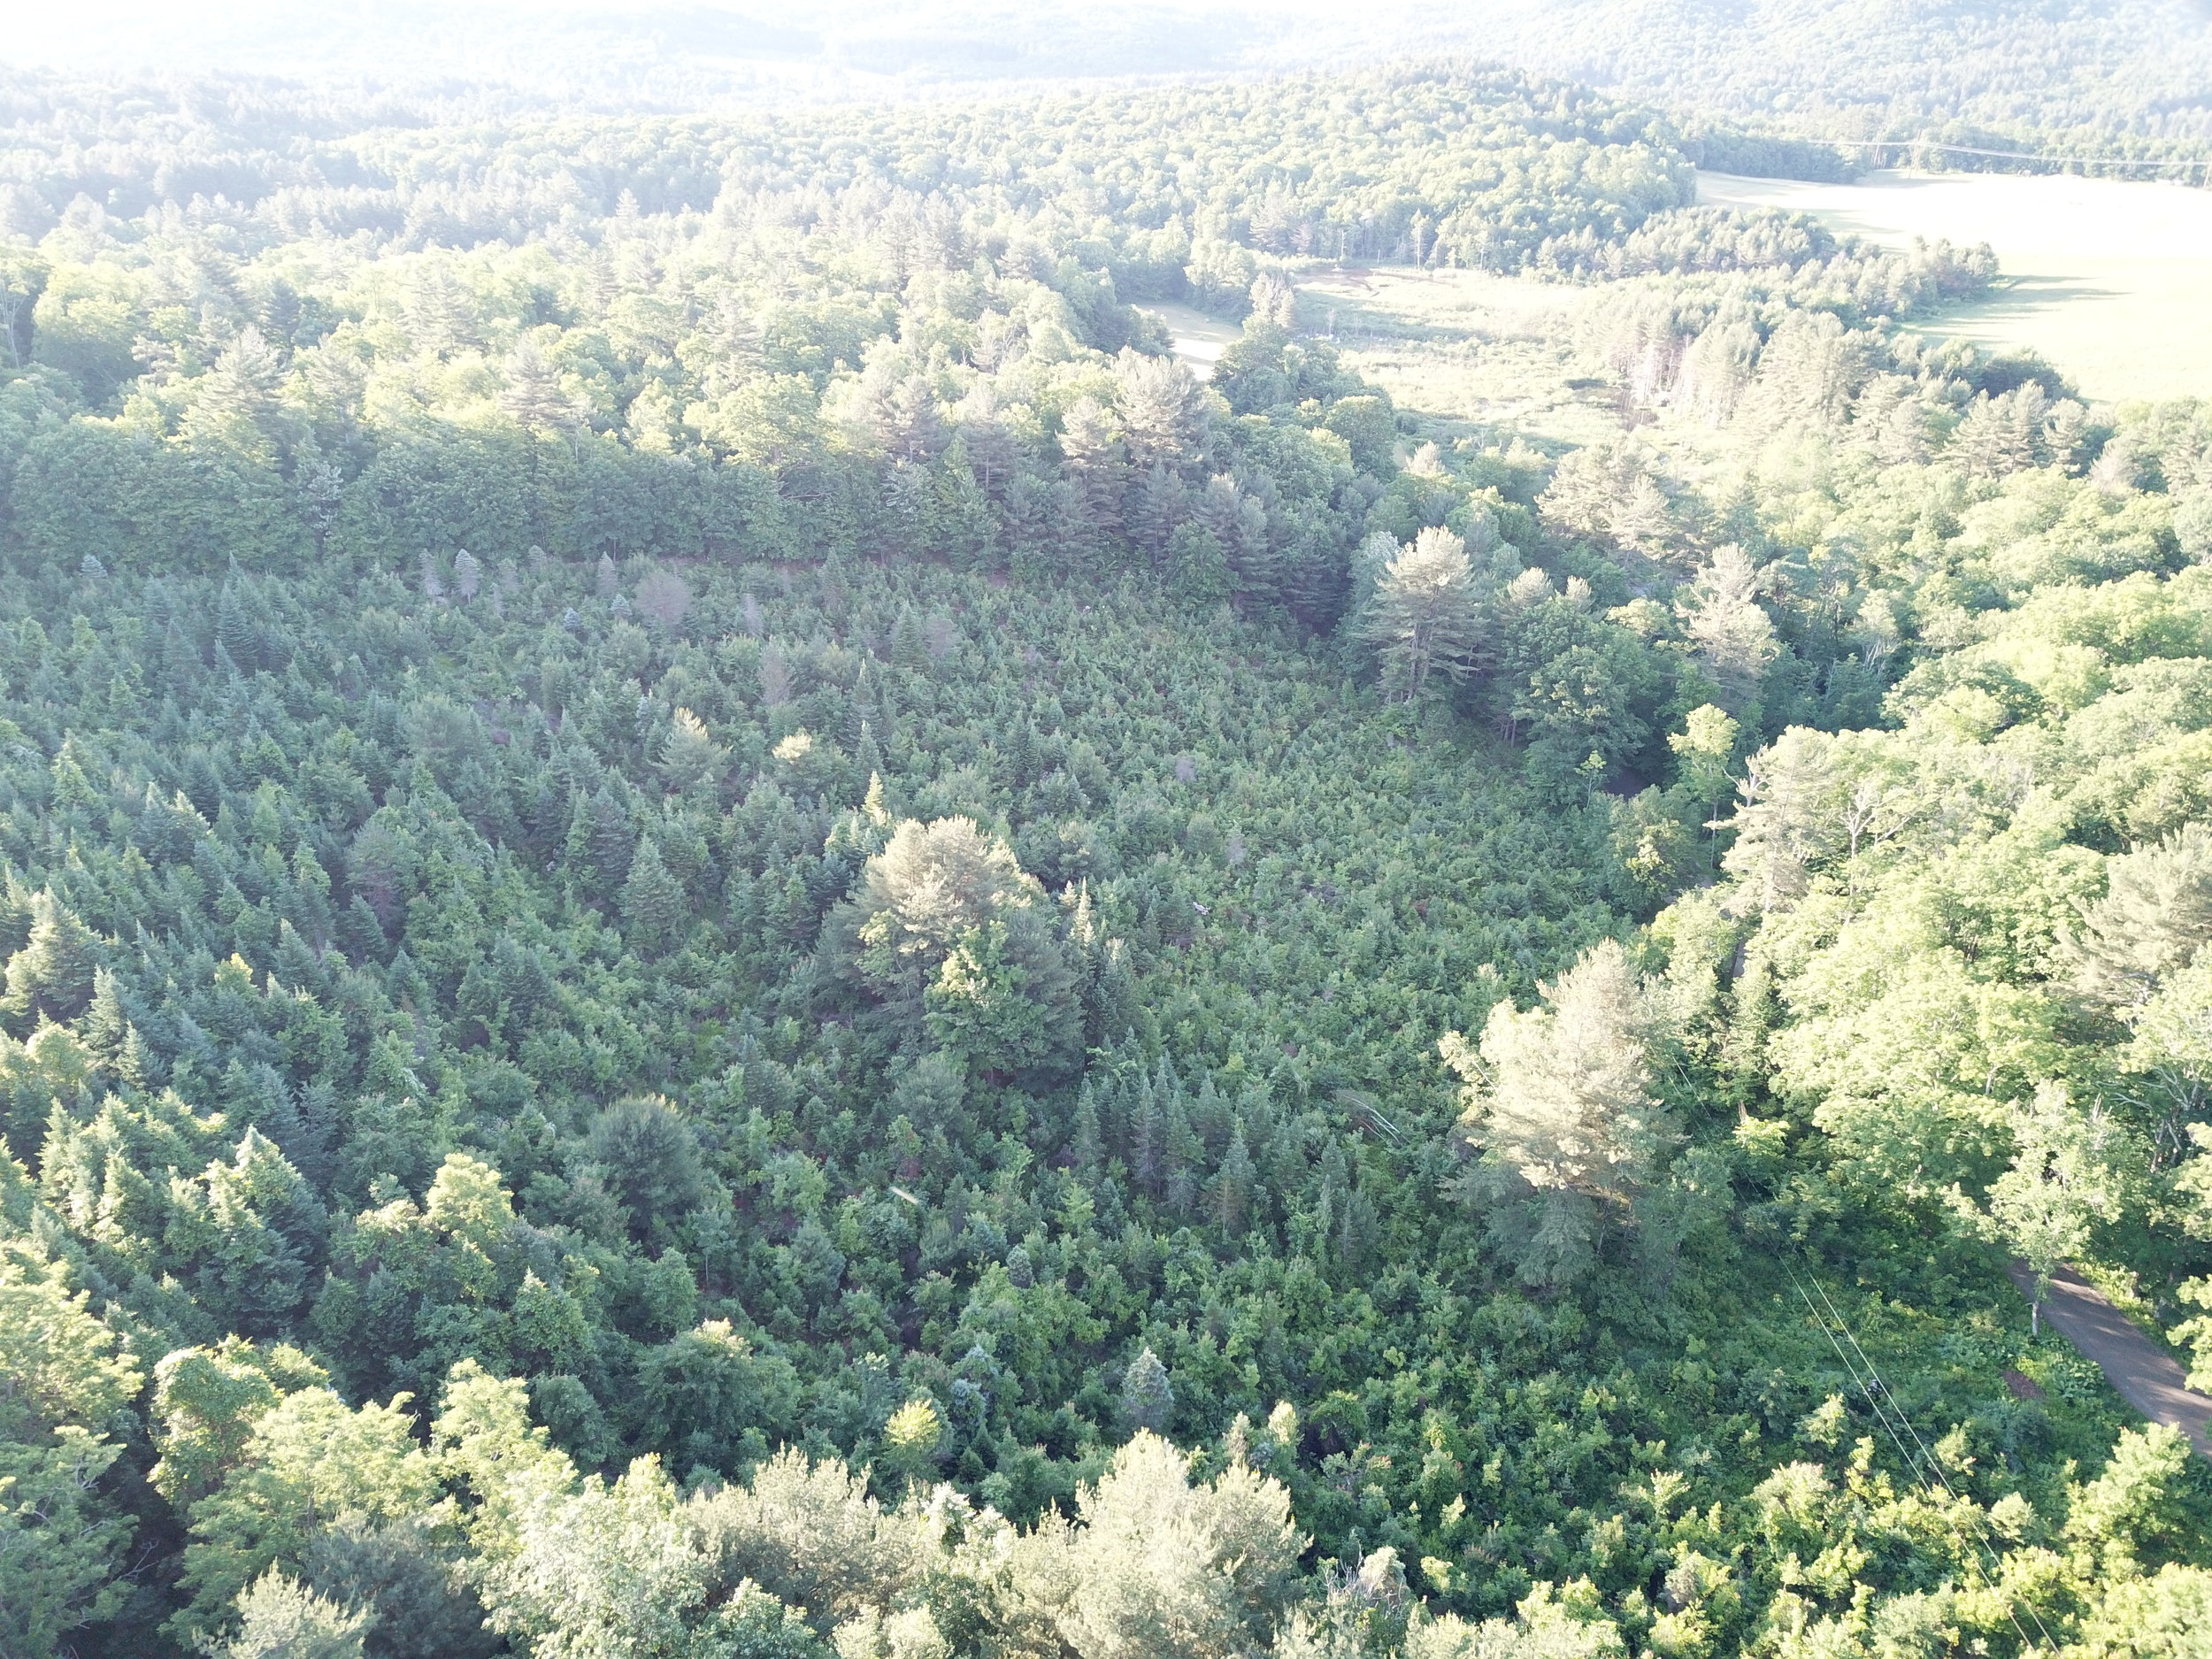 The You-Cut grove from the air (photo by Tom Utterbach)